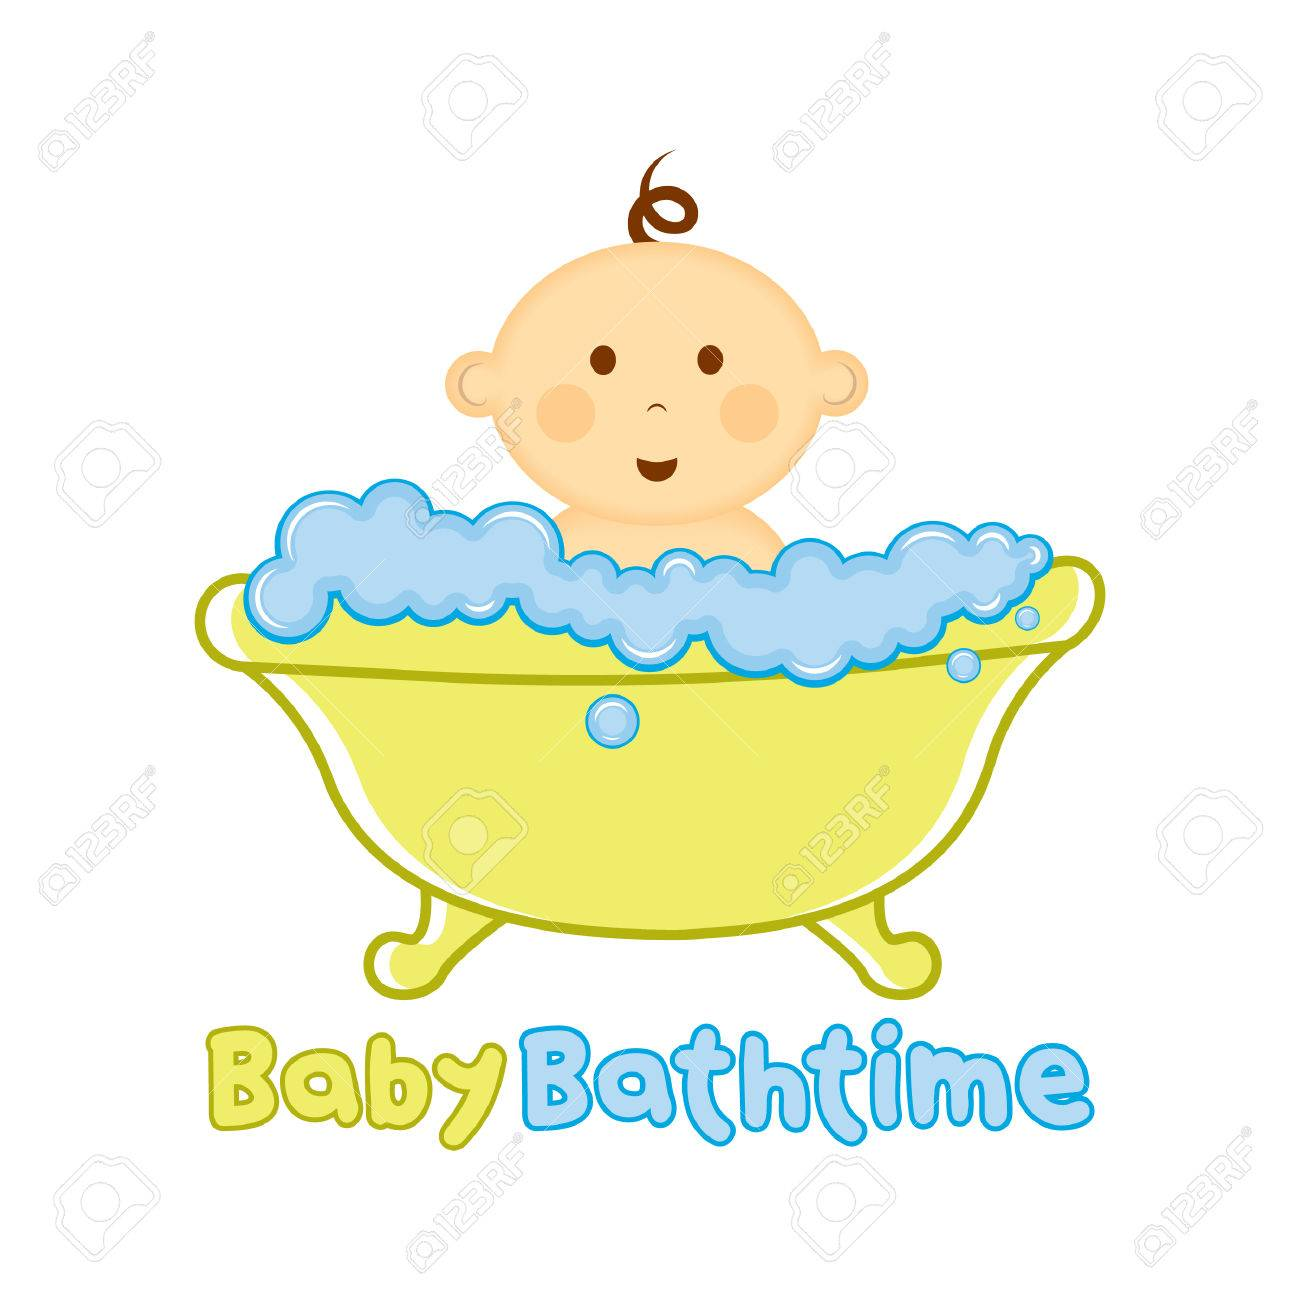 Baby Bath Time Template, Baby Bathing Vector Illustration, Baby ...